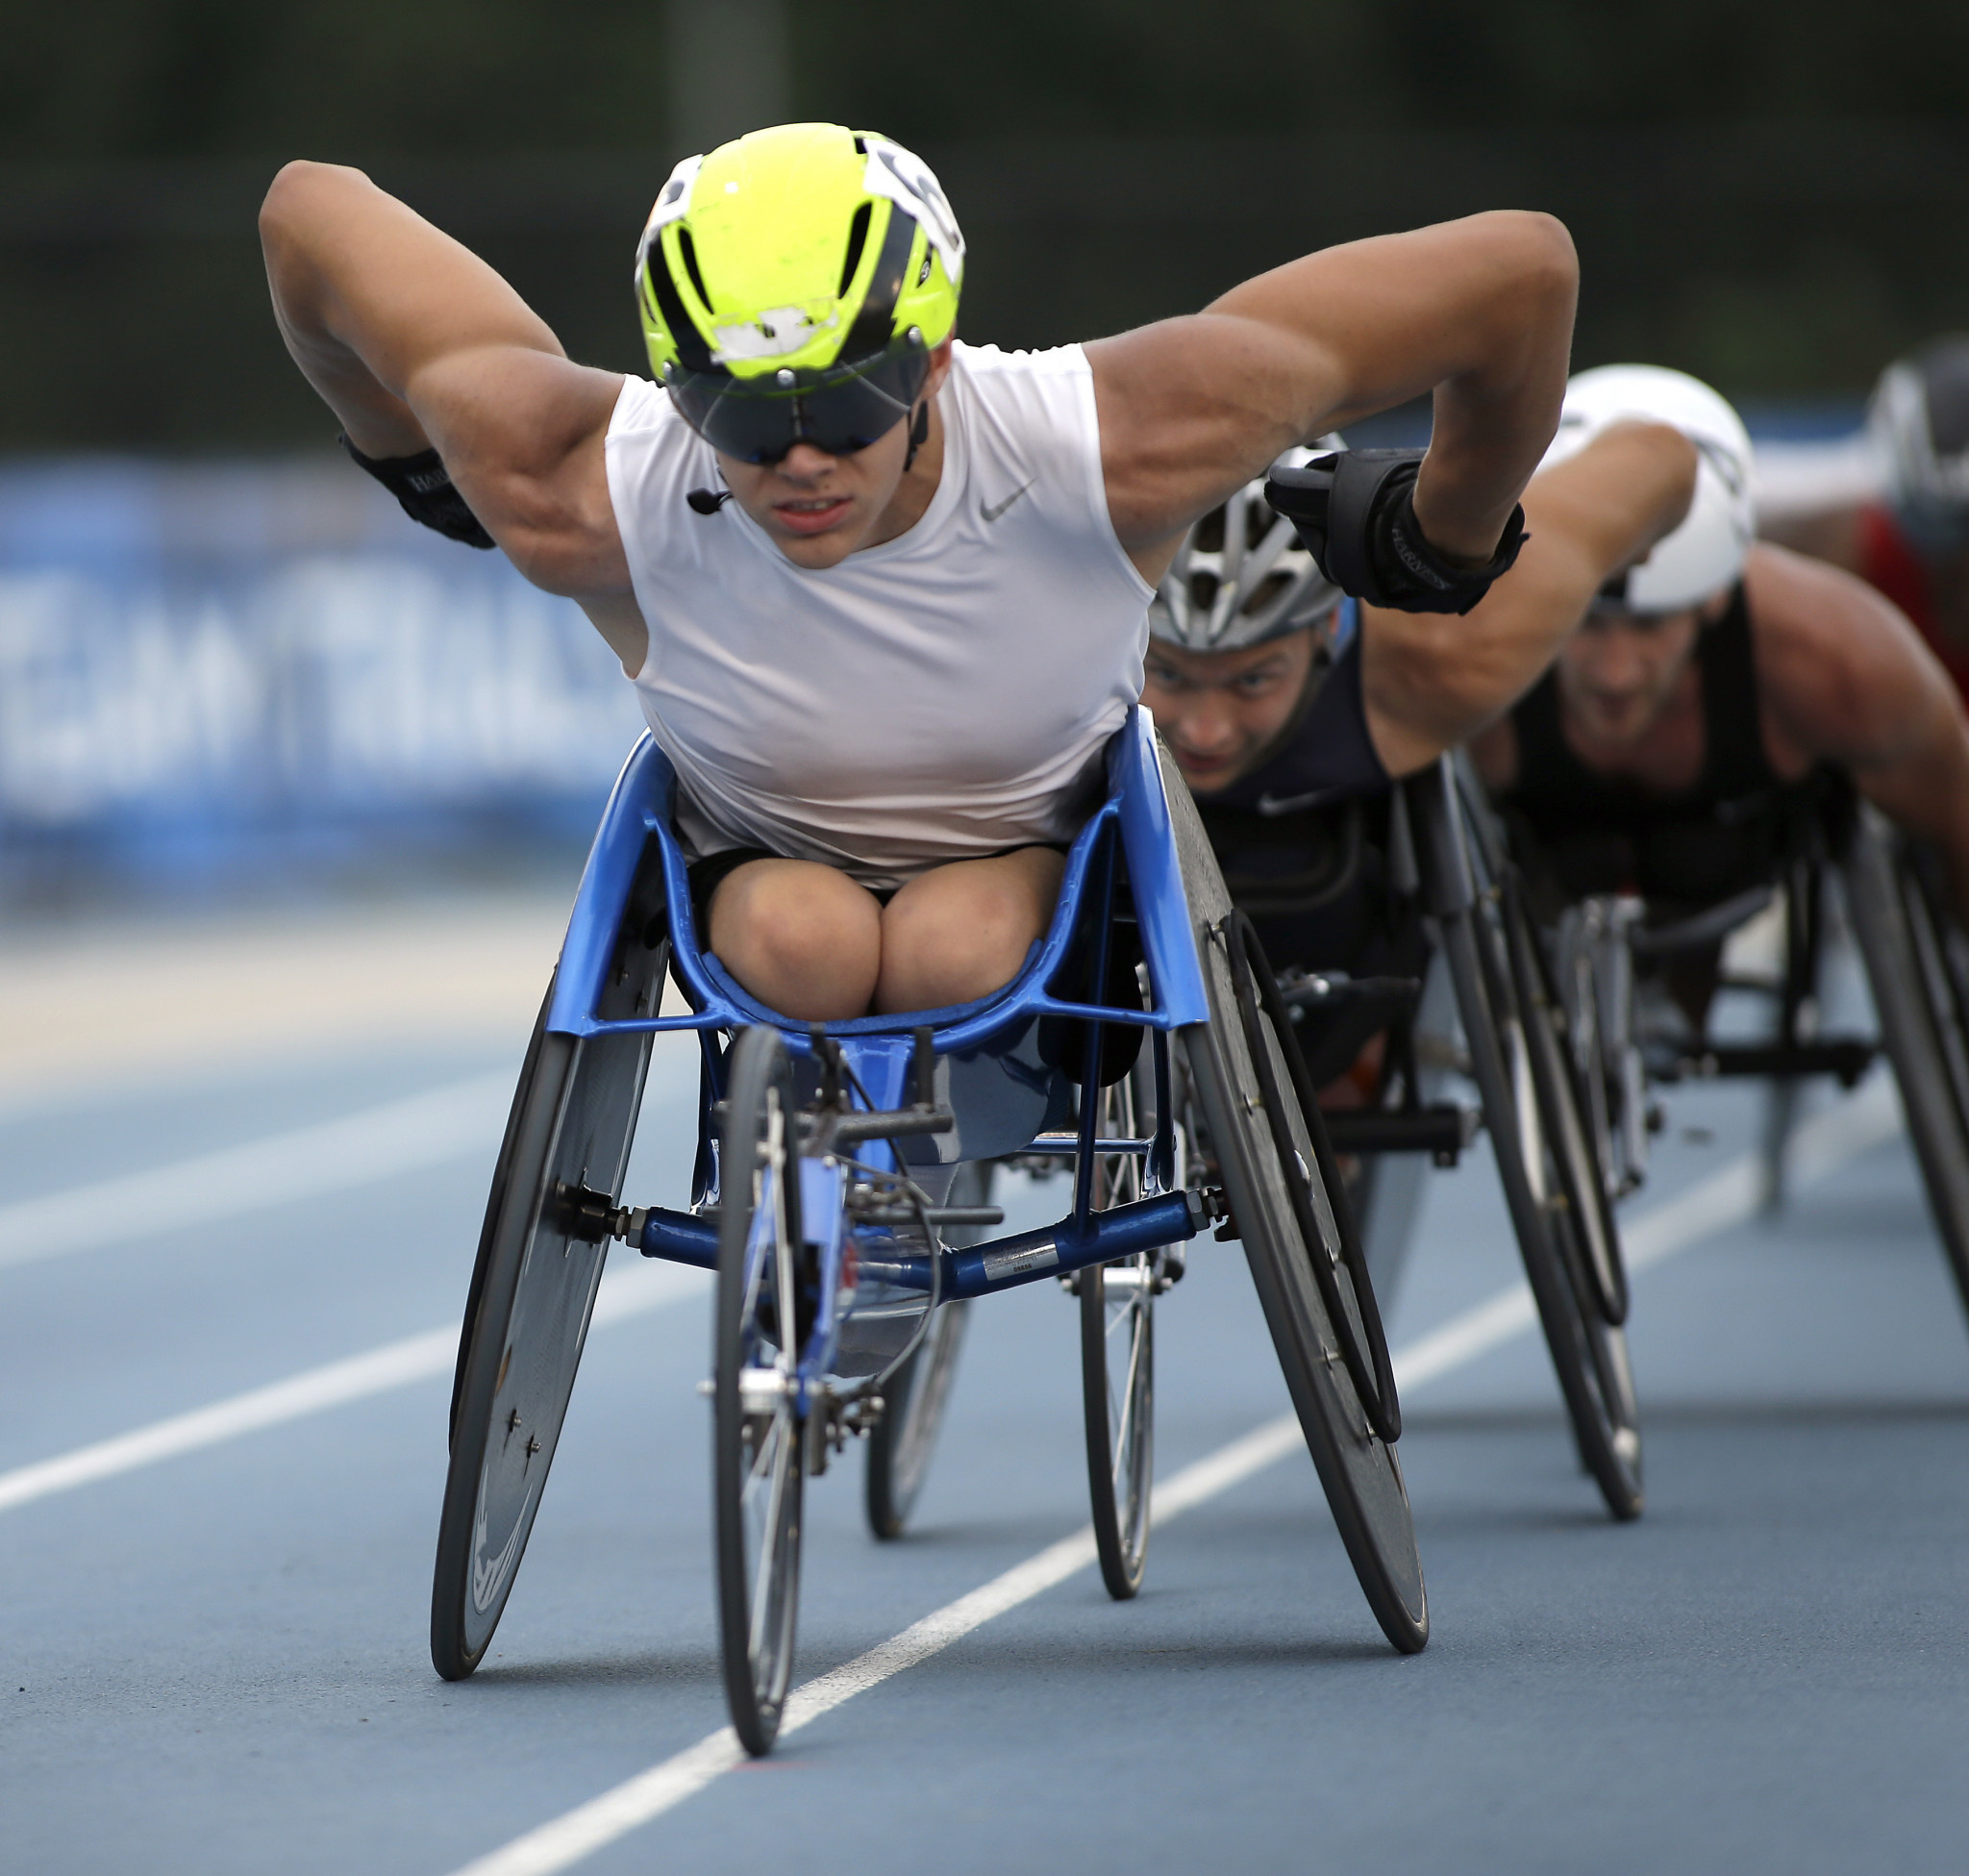 Daniel Romanchuk followed up his T54 800m world record by winning two more titles at the World Para Athletics Grand Prix in Arizona over 400 and 1,500m ©Getty Images